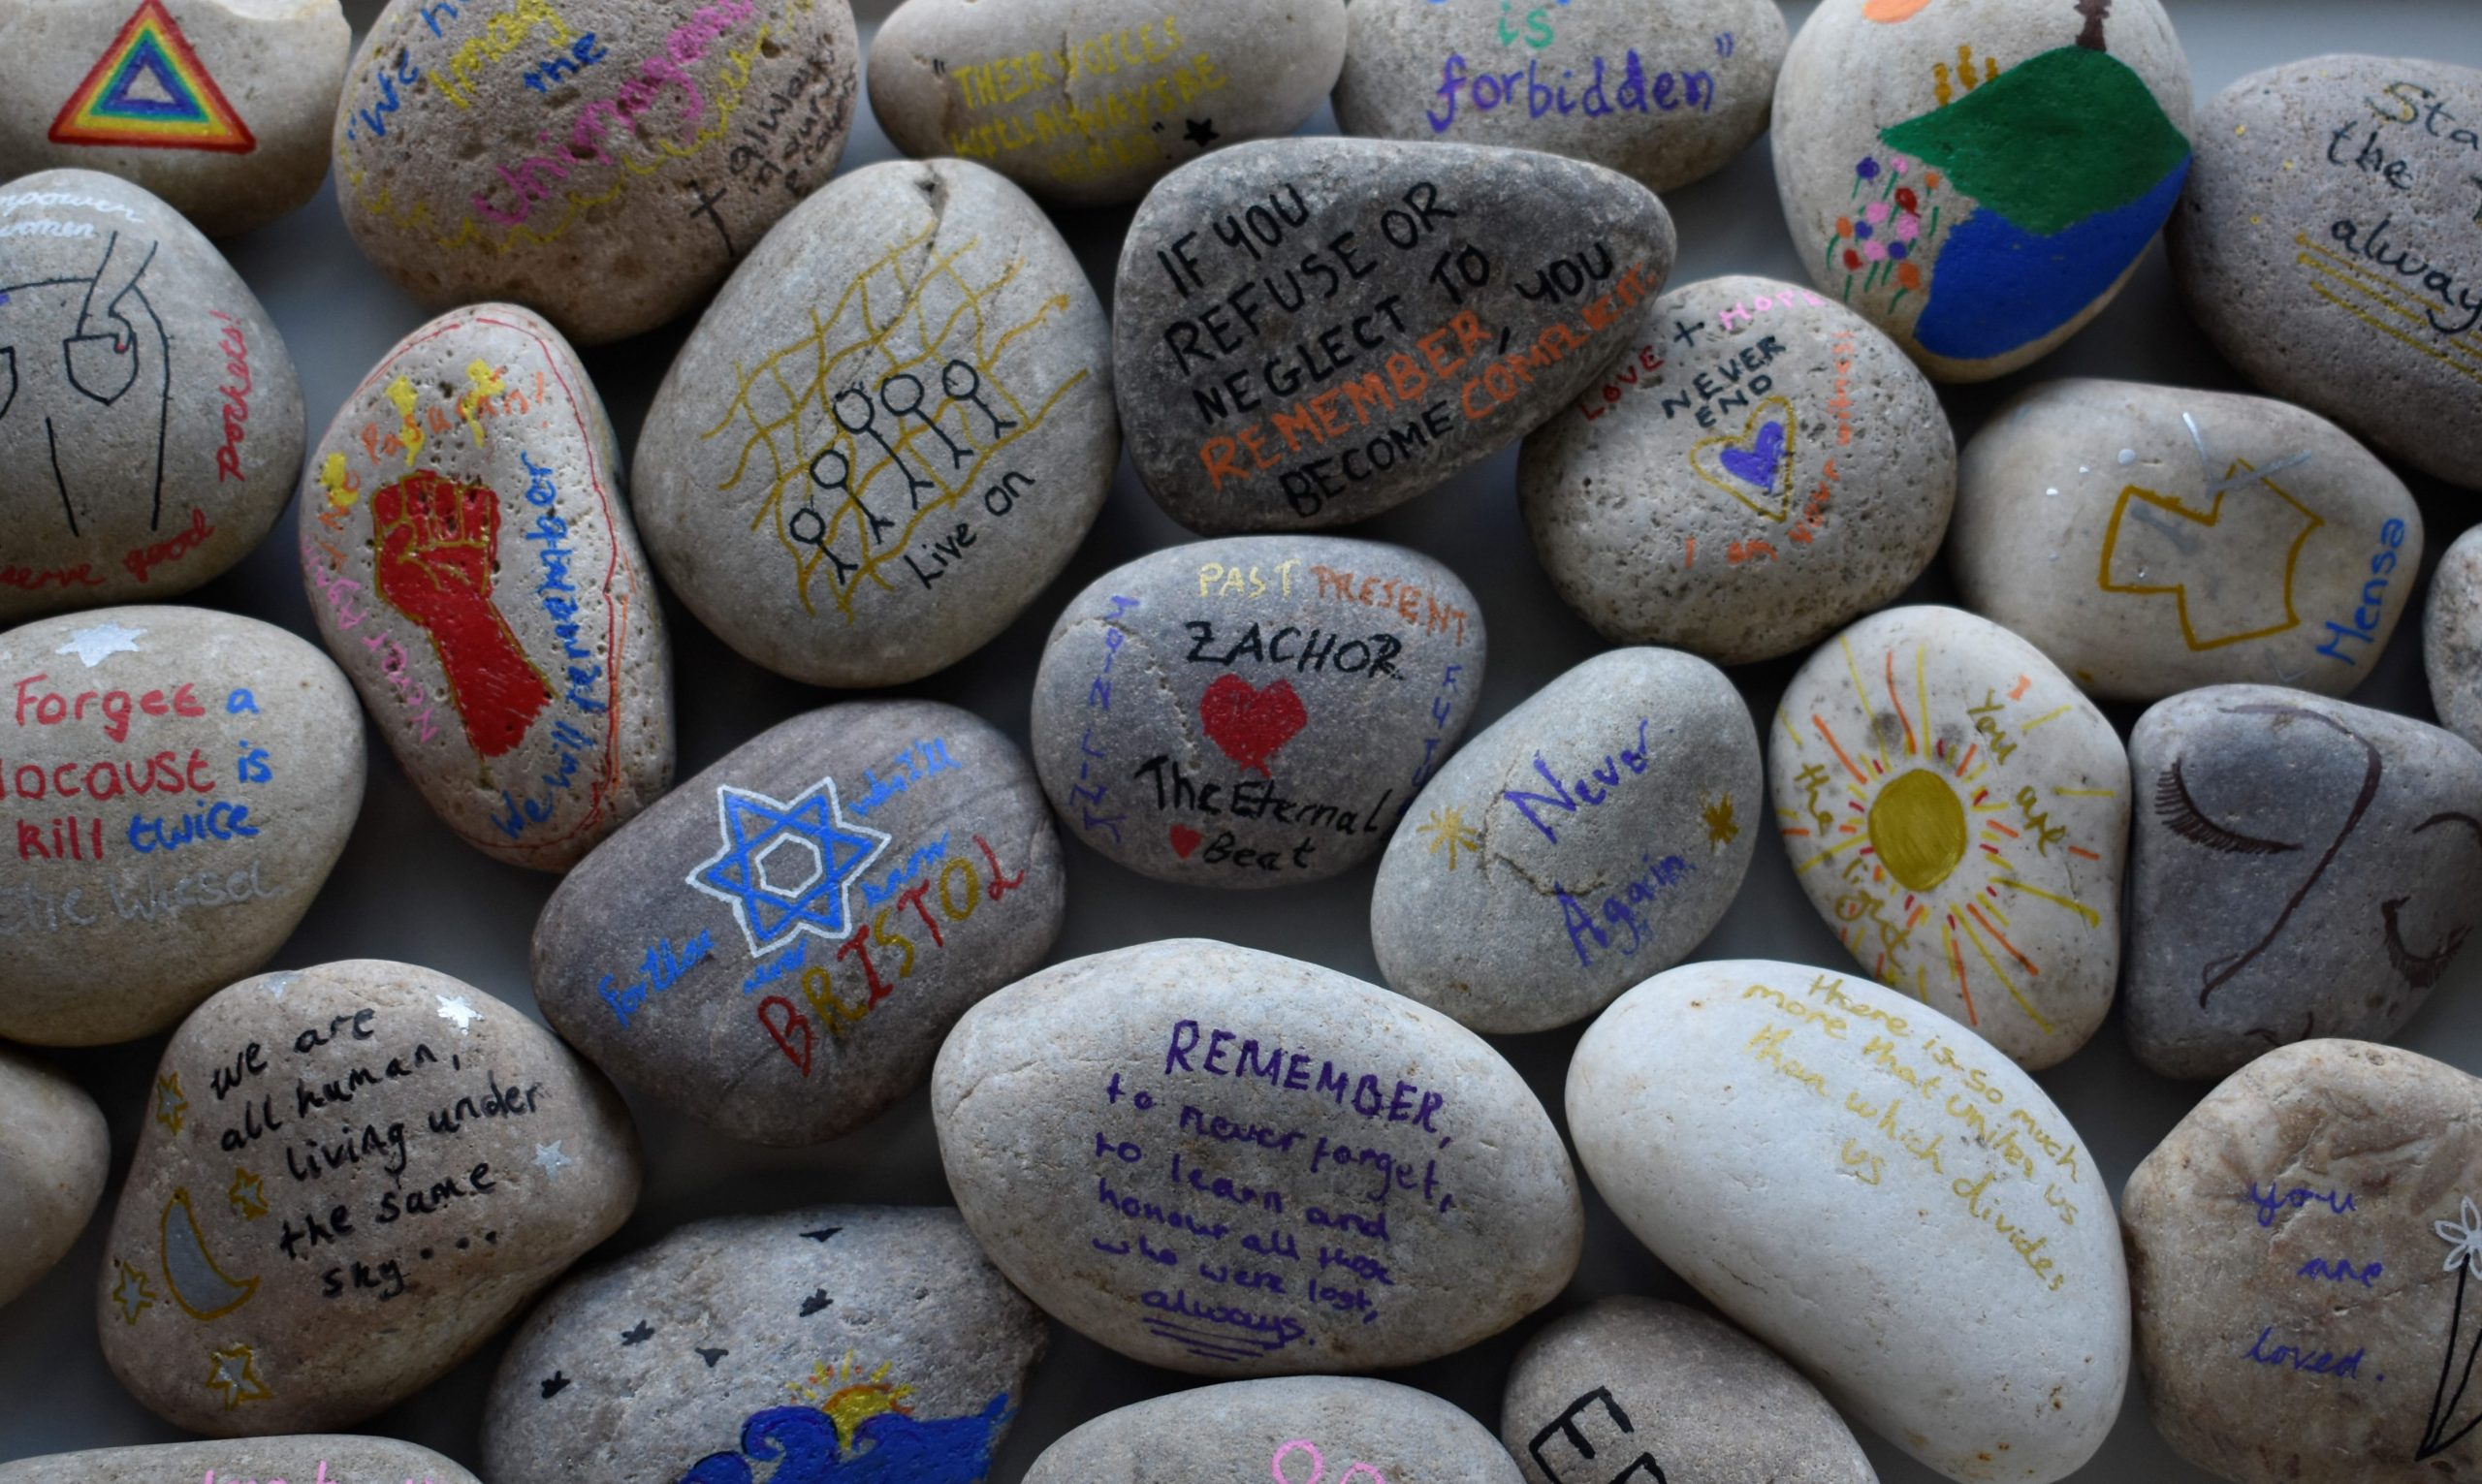 GTG is taking part in Foundation Stones to mark Holocaust Memorial Day